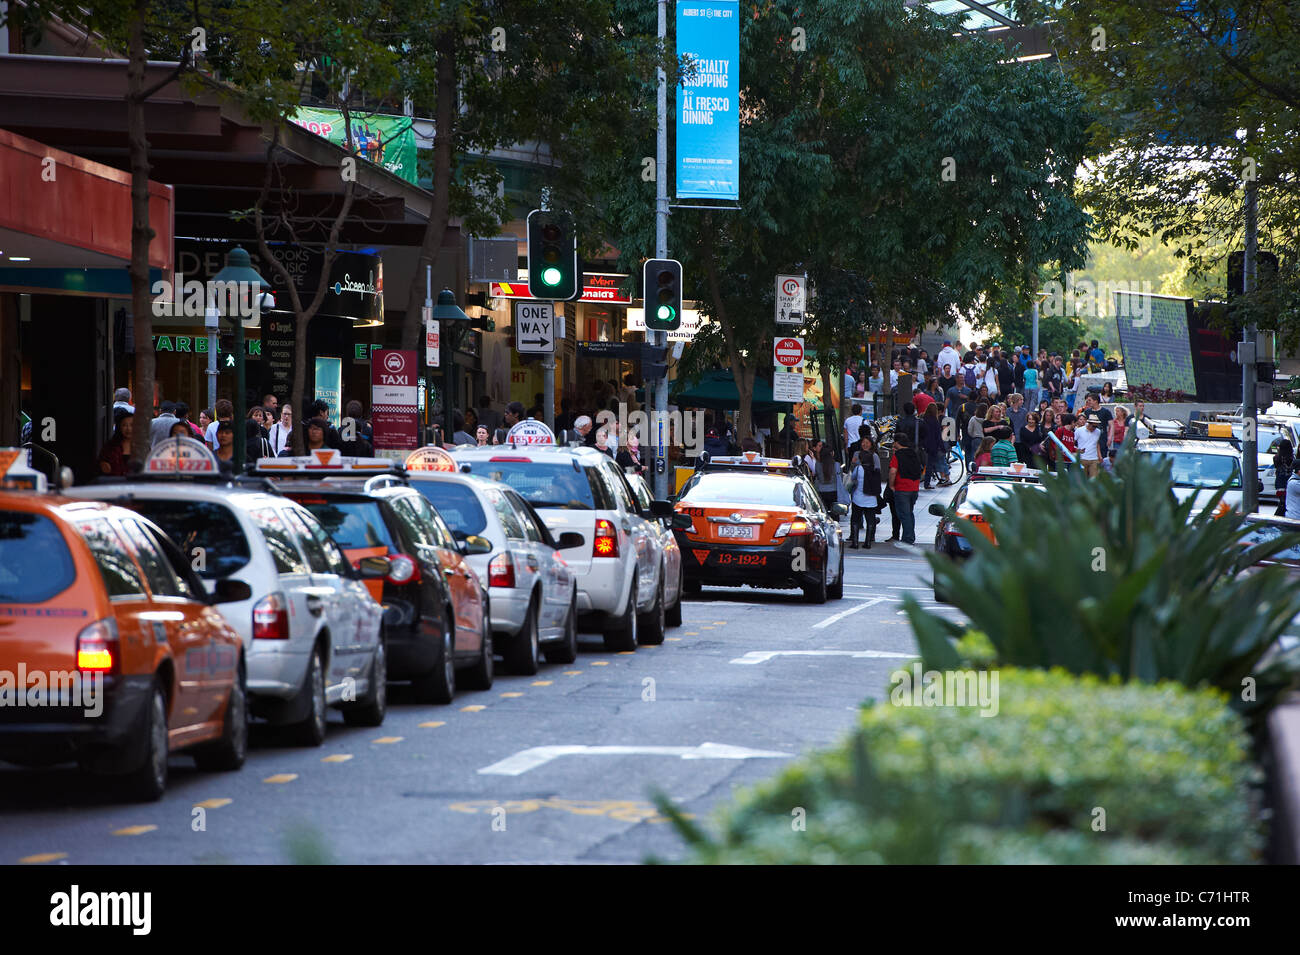 Taxi rank in Albert Street, Brisbane Australia - Stock Image